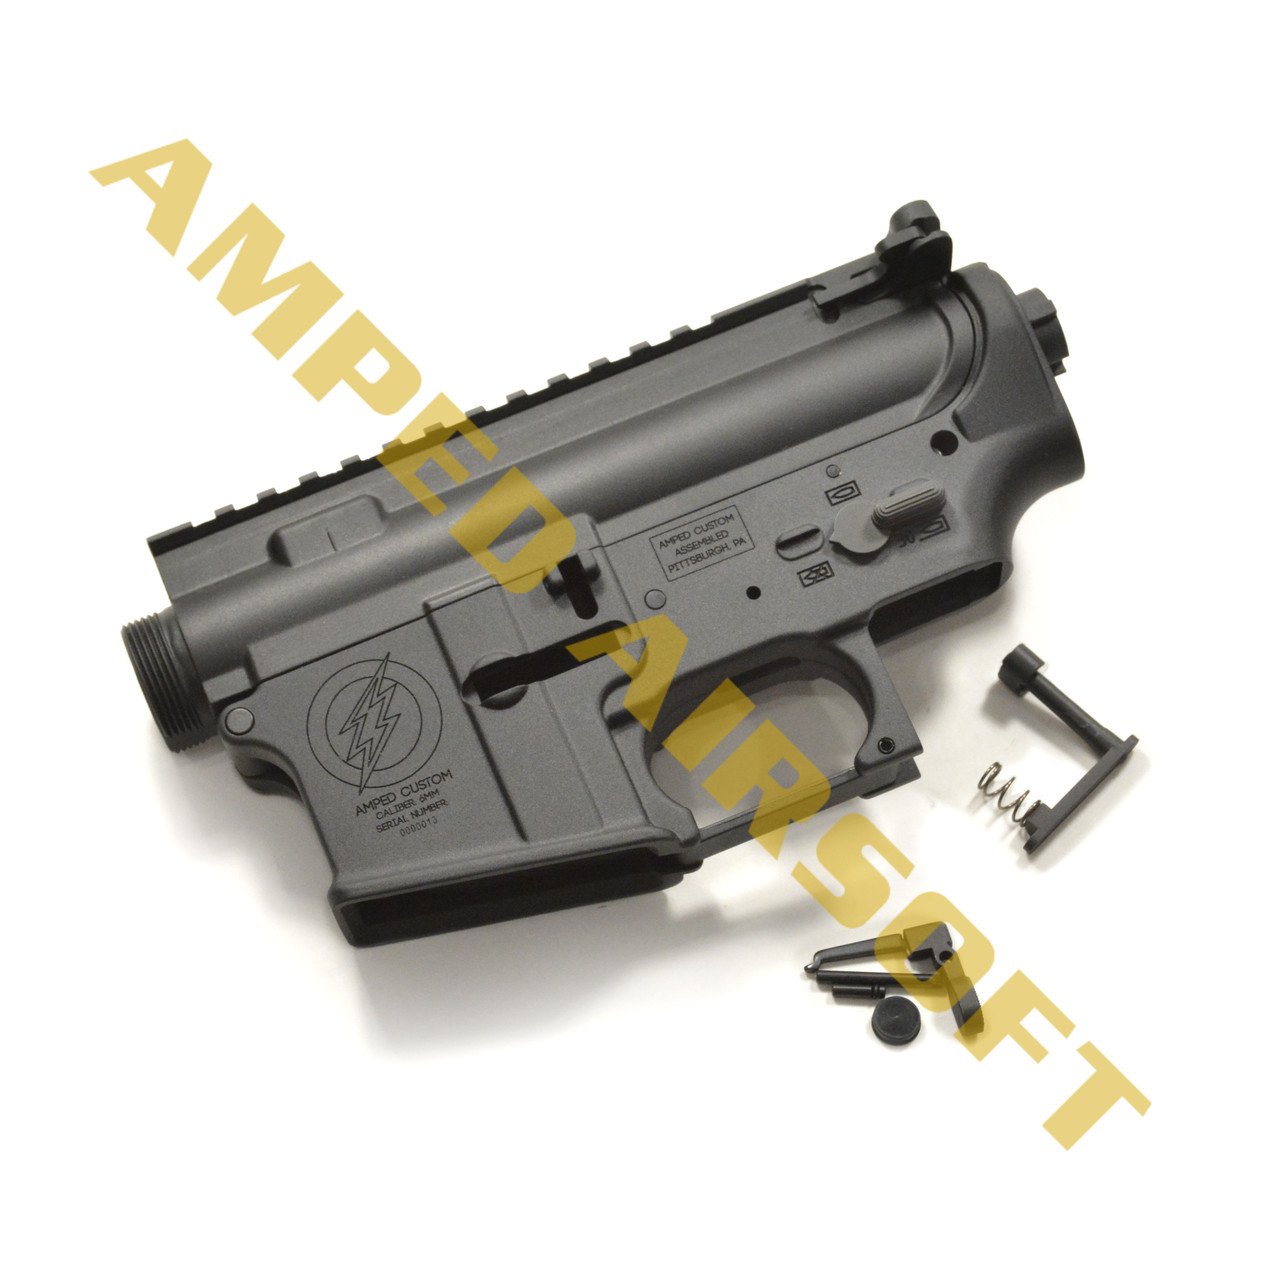 amped custom amped m4 metal body receiver kit by vfc__27314.1477423855?c=2 vfc buffer tube kit for aeg (milspec) amped airsoft  at n-0.co